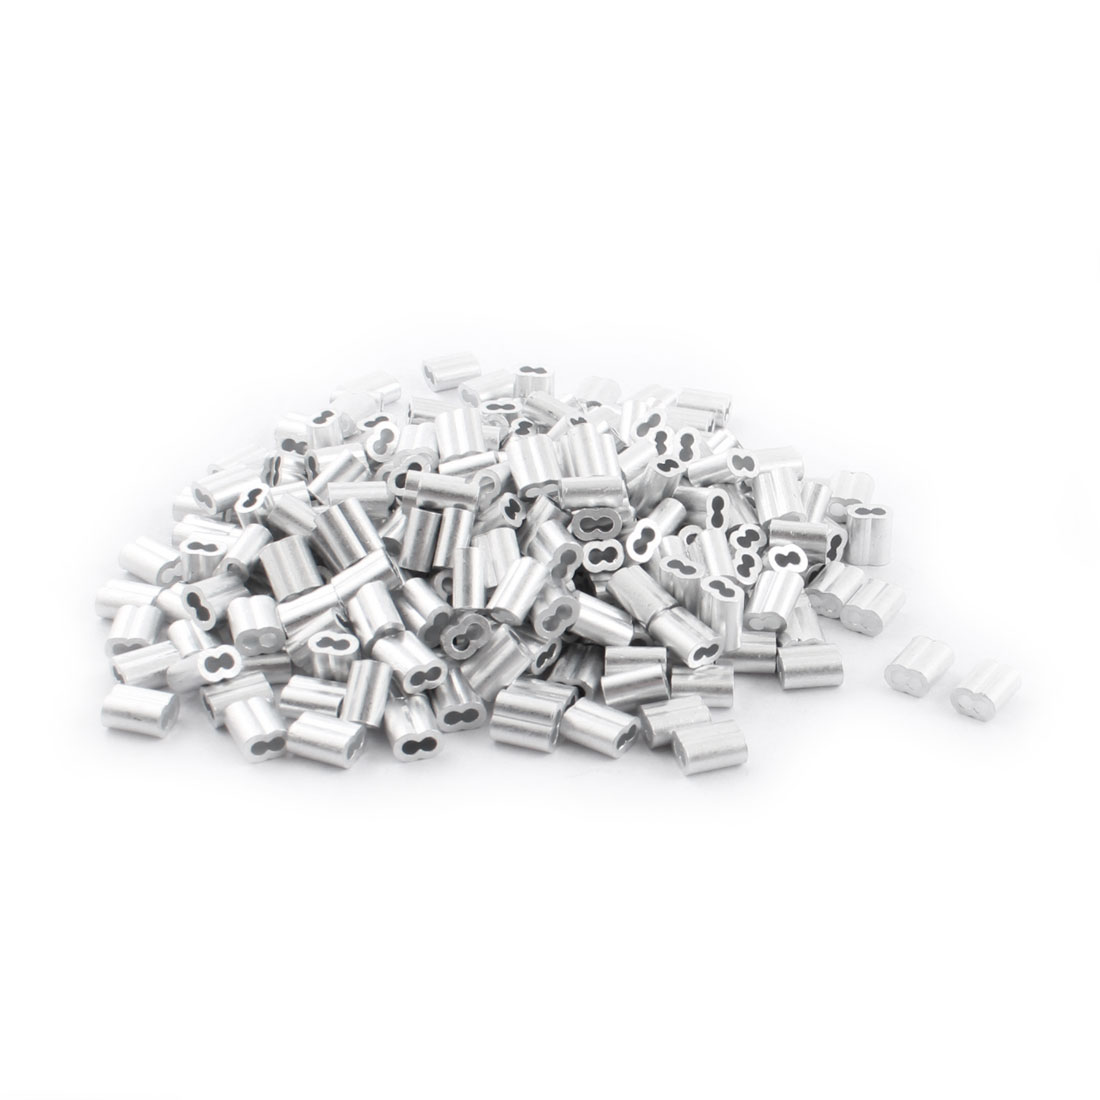 "250Pcs 1/8""x 3/8"" Aluminum Hourglass Ferrules Sleeve Crimp for 2mm Wire Rope"